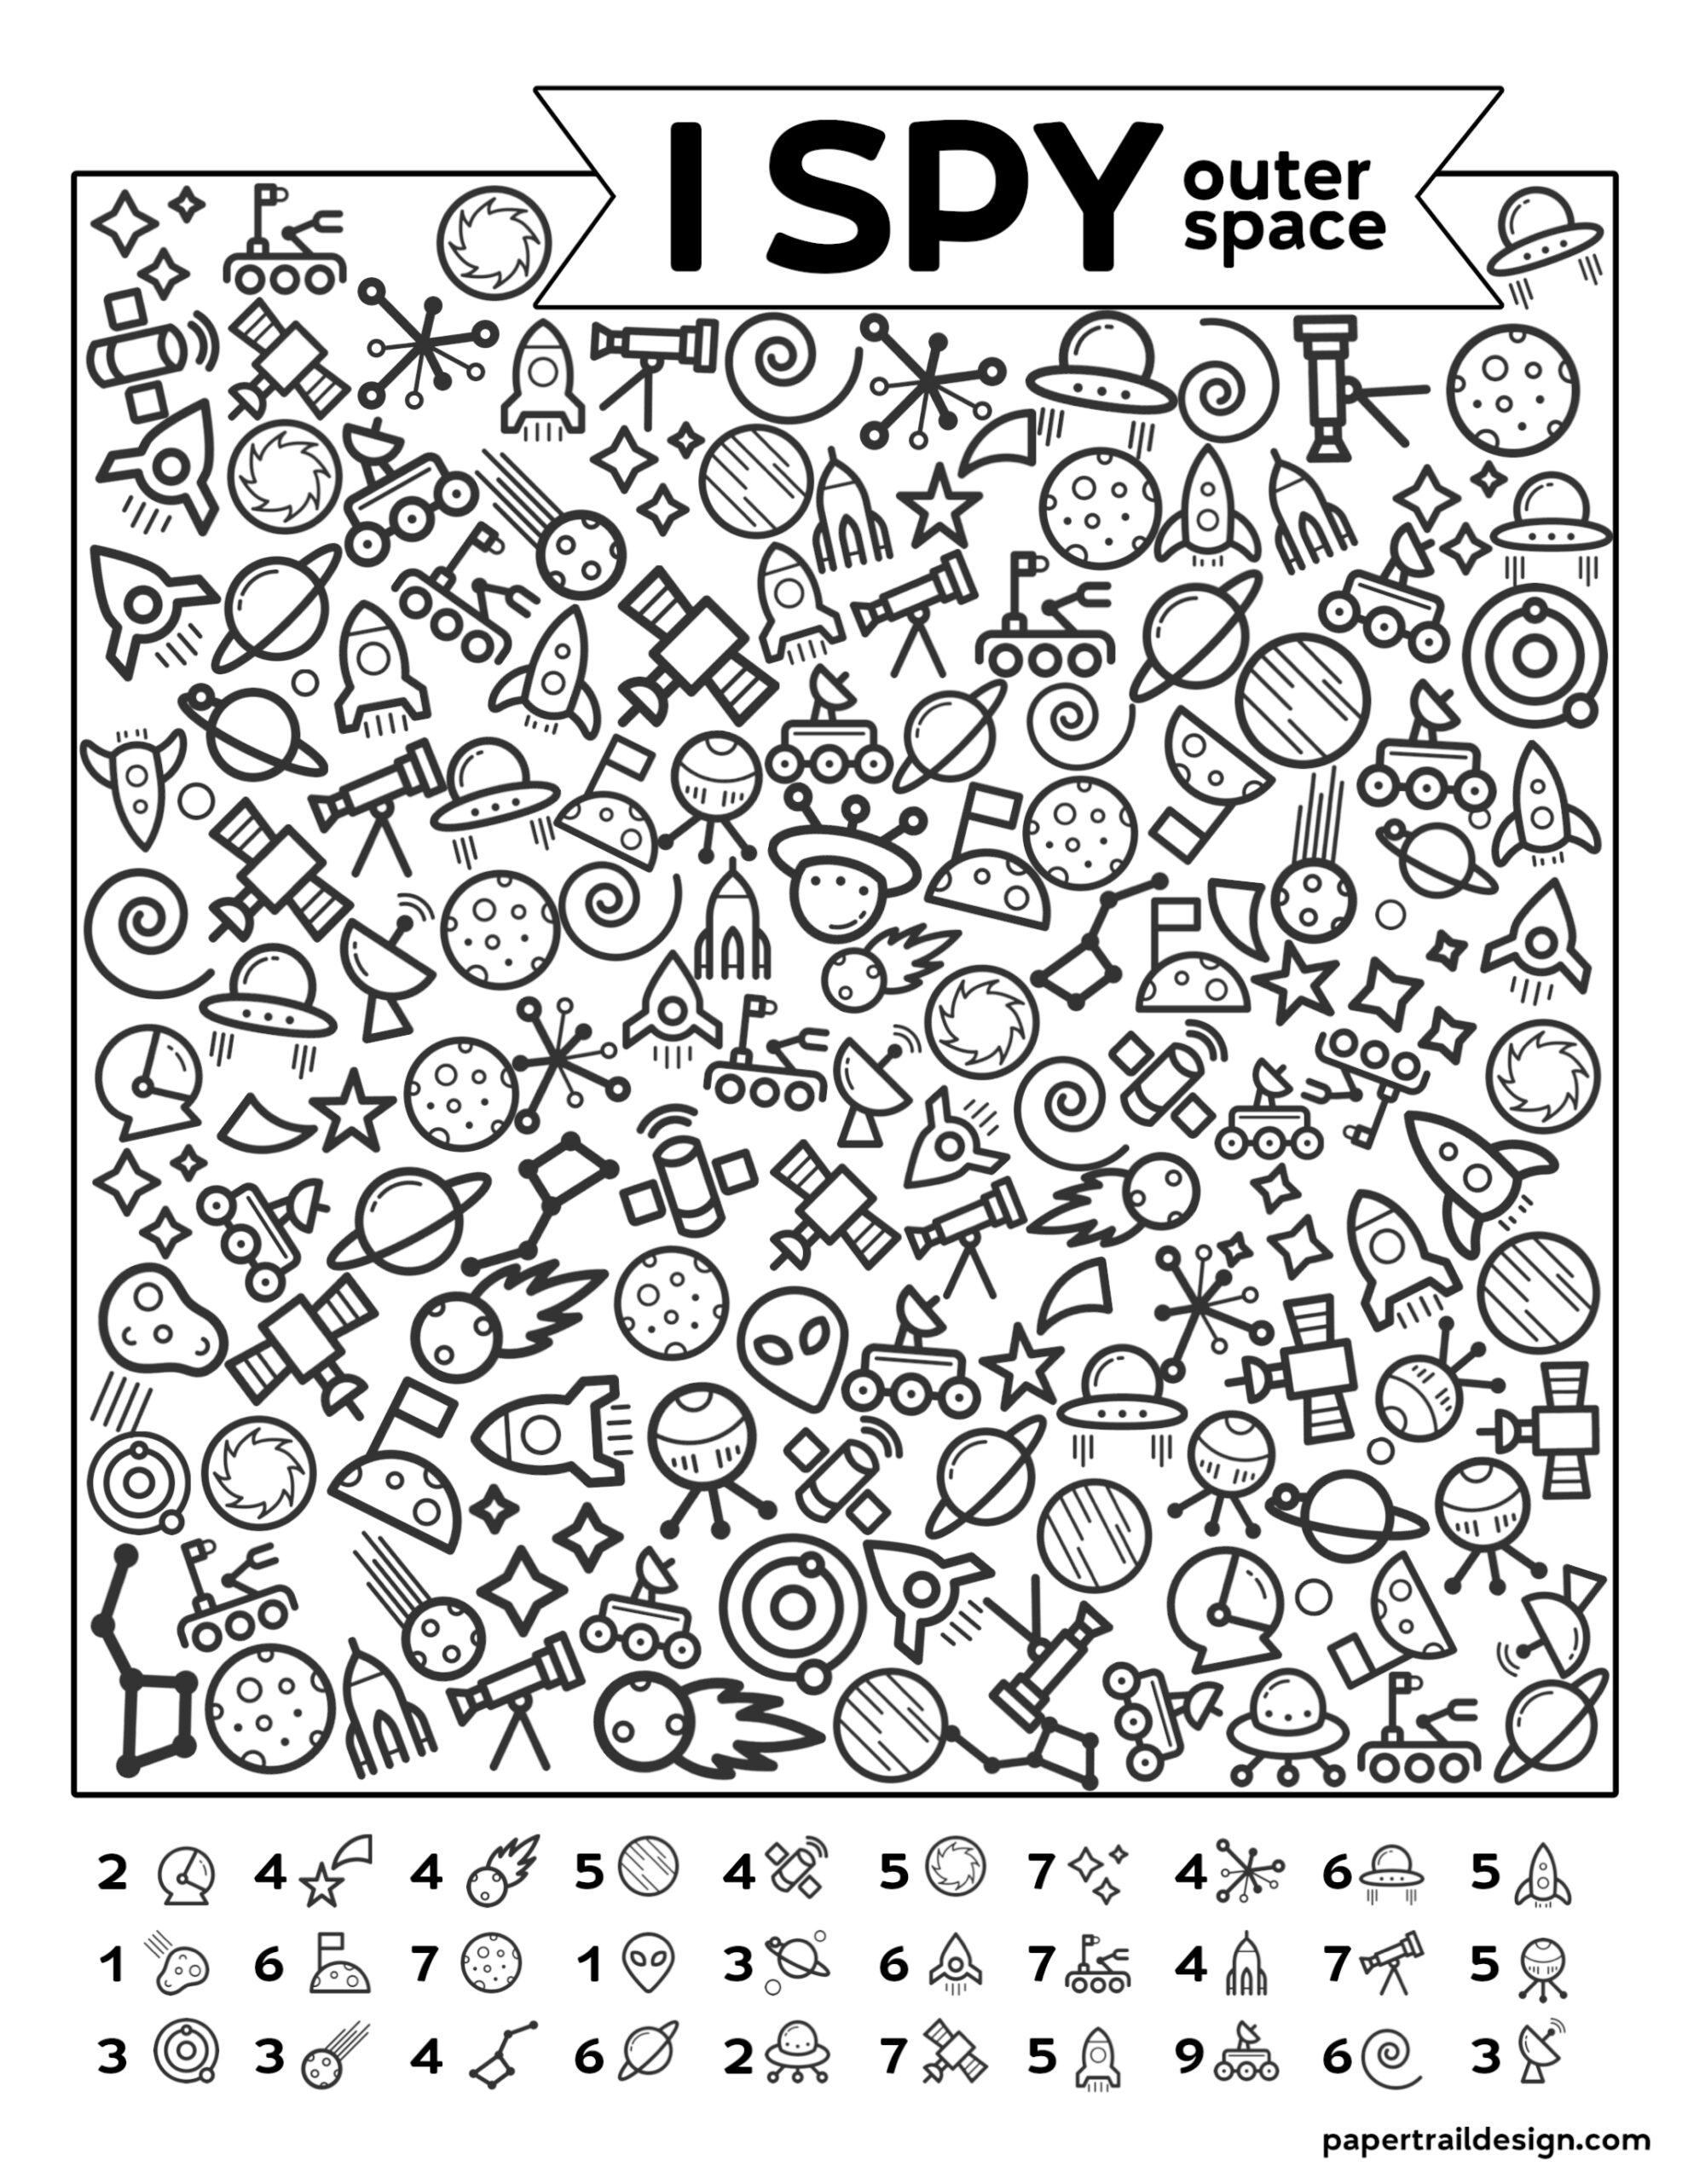 image regarding Space Printable identified as Totally free Printable I Spy Outer Place Recreation - Paper Path Style and design